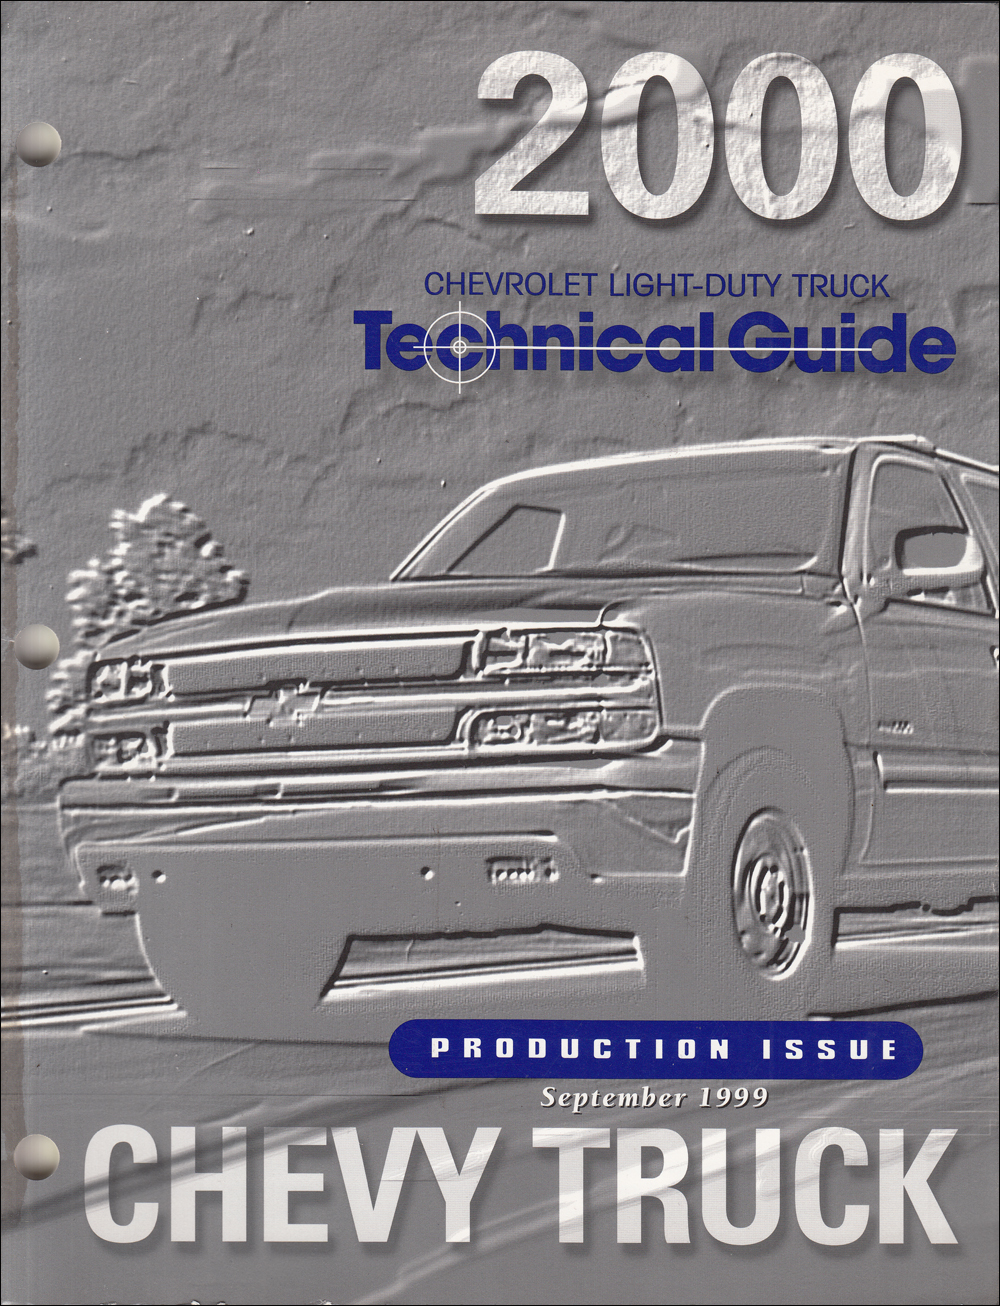 2000 Chevrolet Truck Technical Guide Dealer Album Original Production Issue